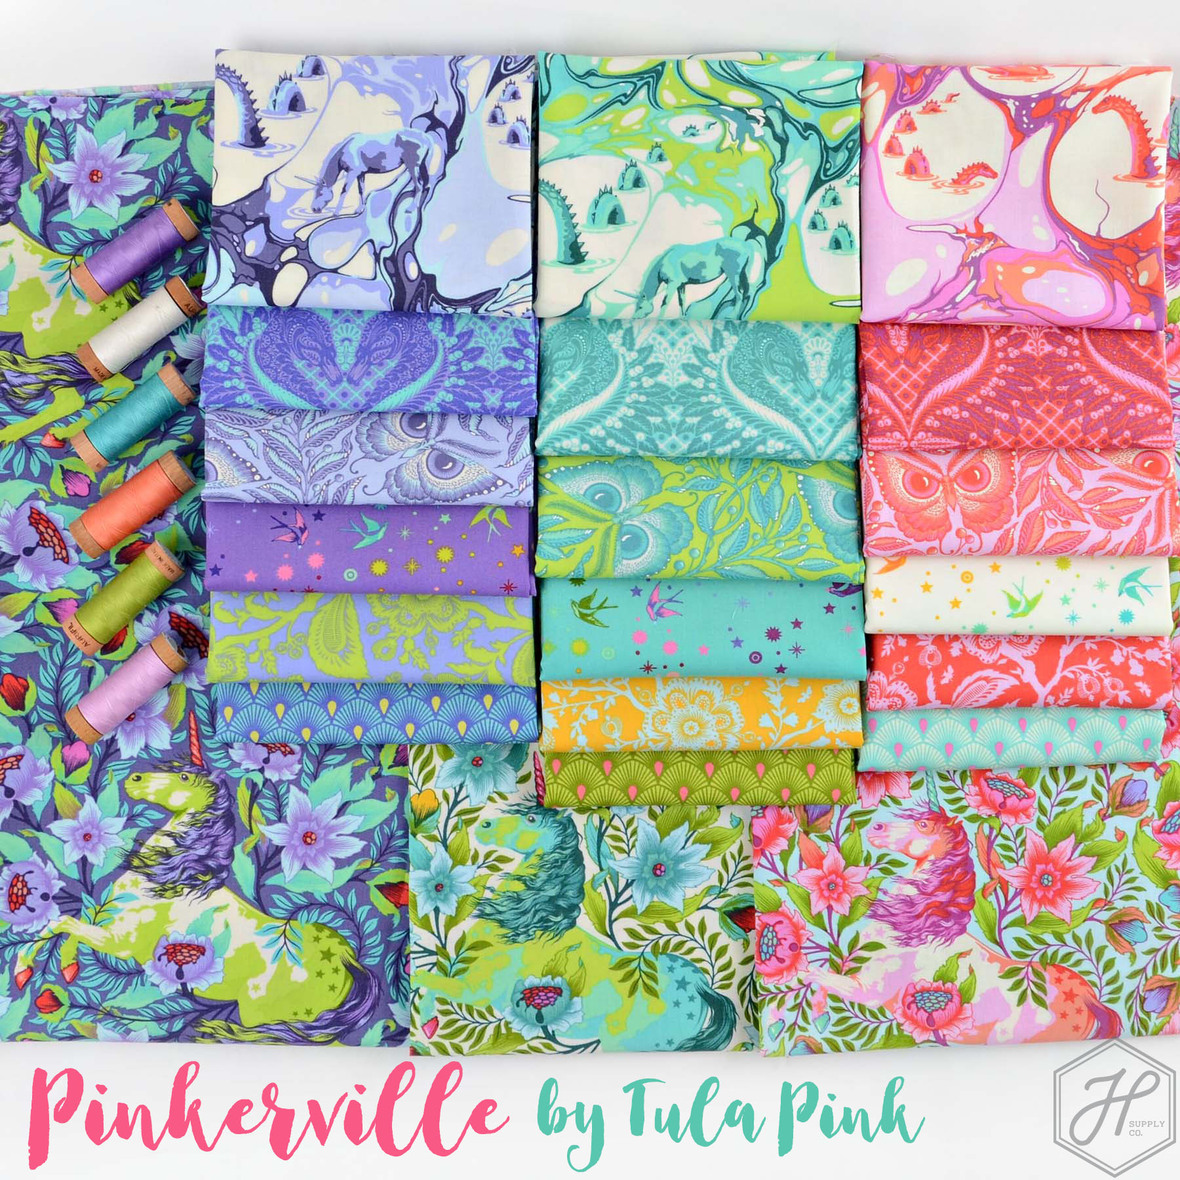 Pinkerville Fabric Poster Tula Pink at Hawthorne Supply Co 1